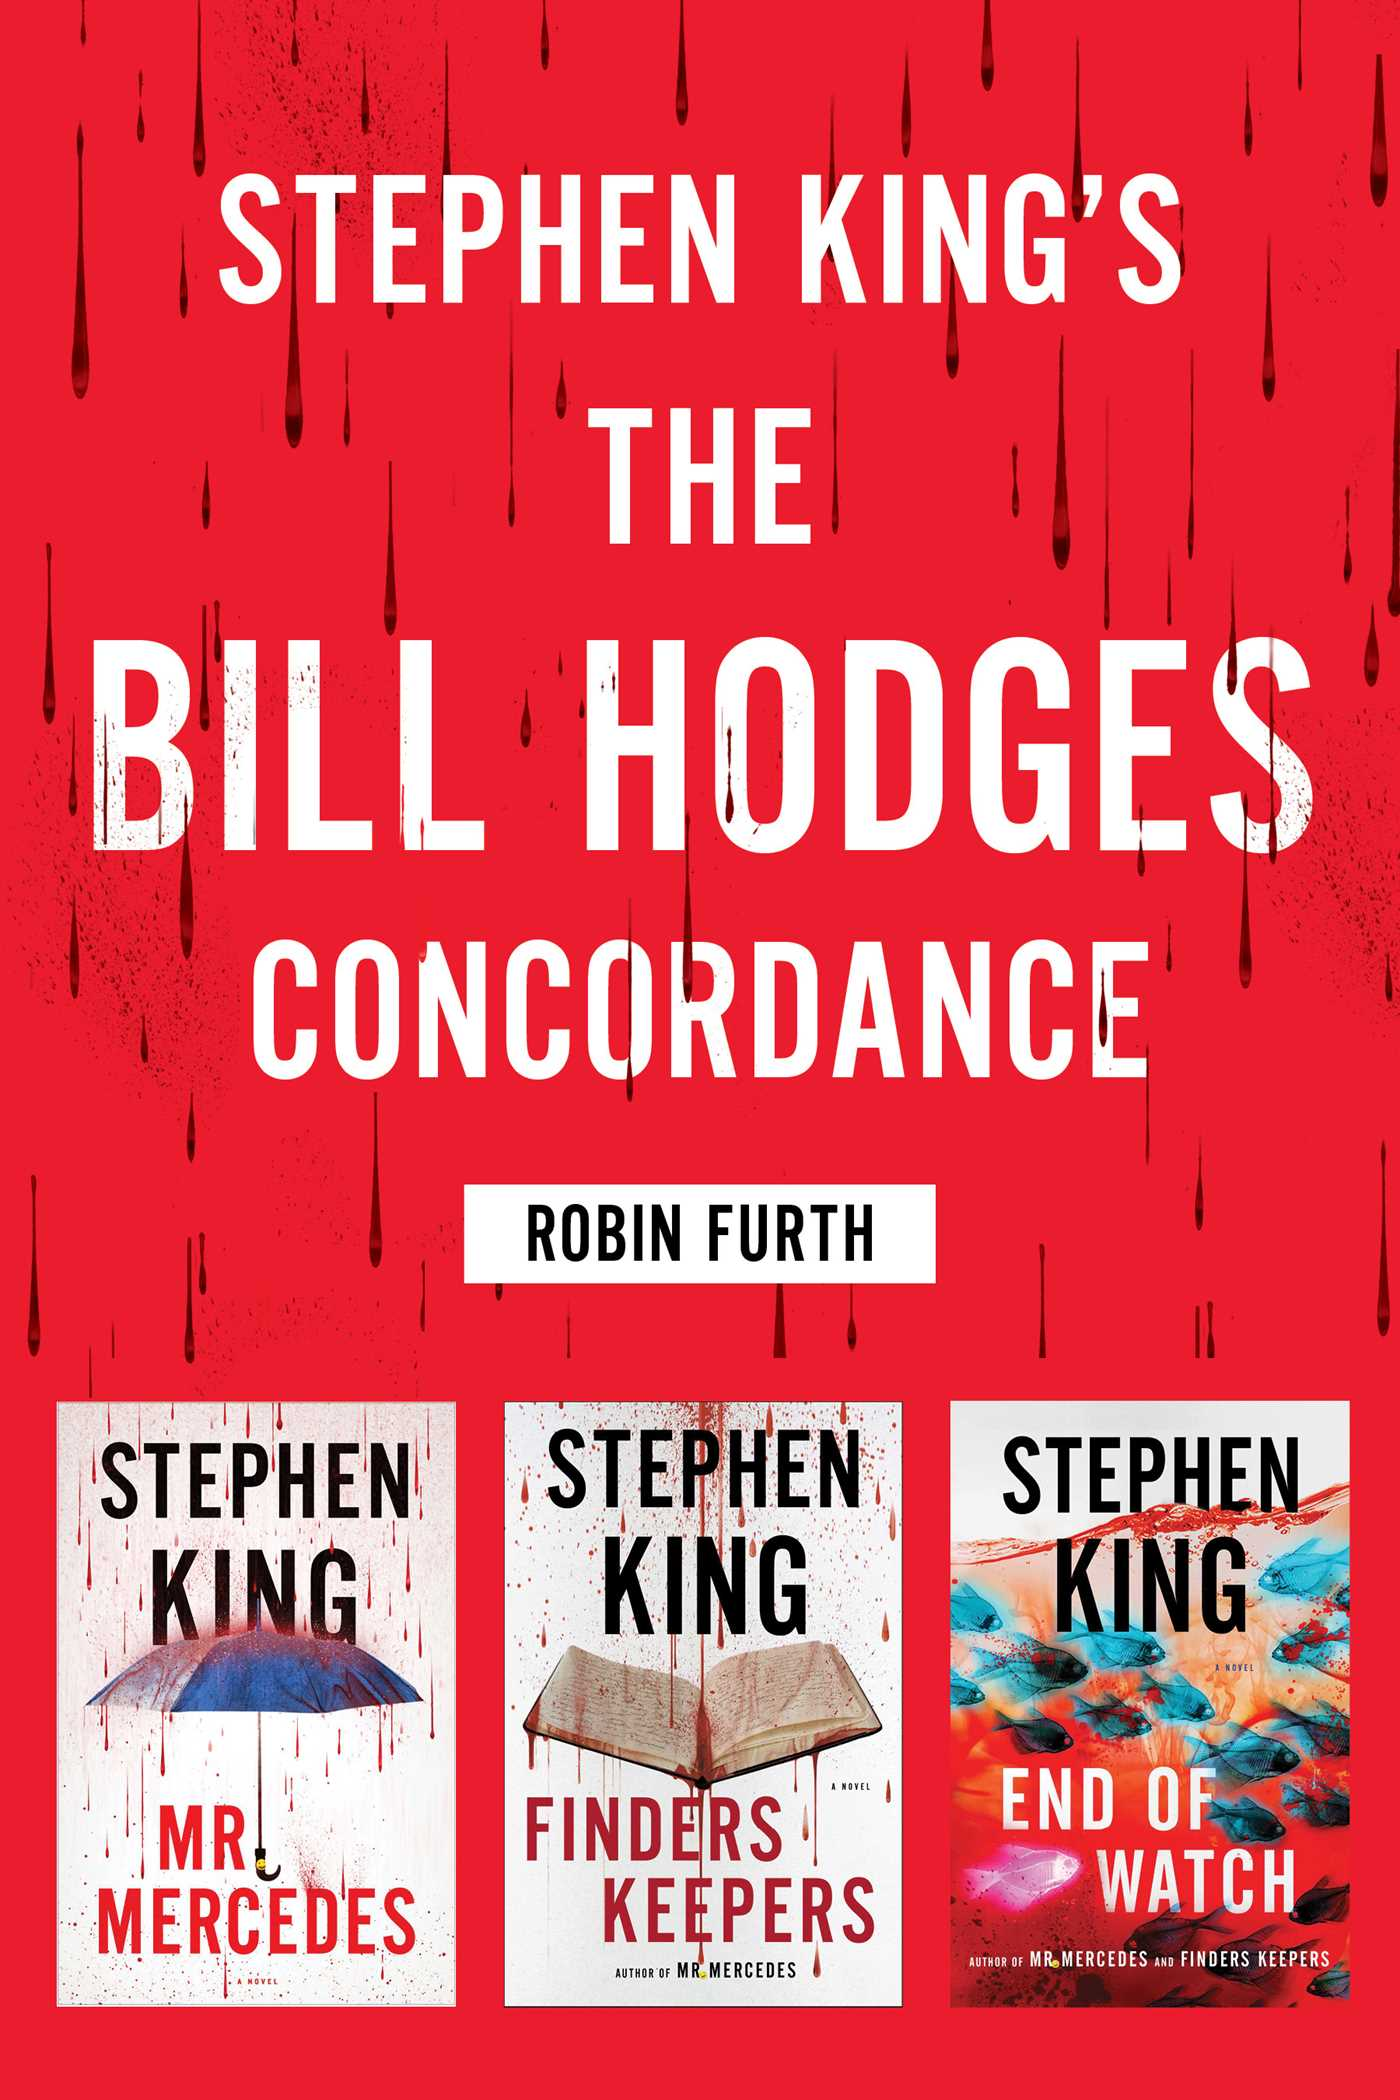 Stephen King's The Bill Hodges Trilogy Concordance eBook